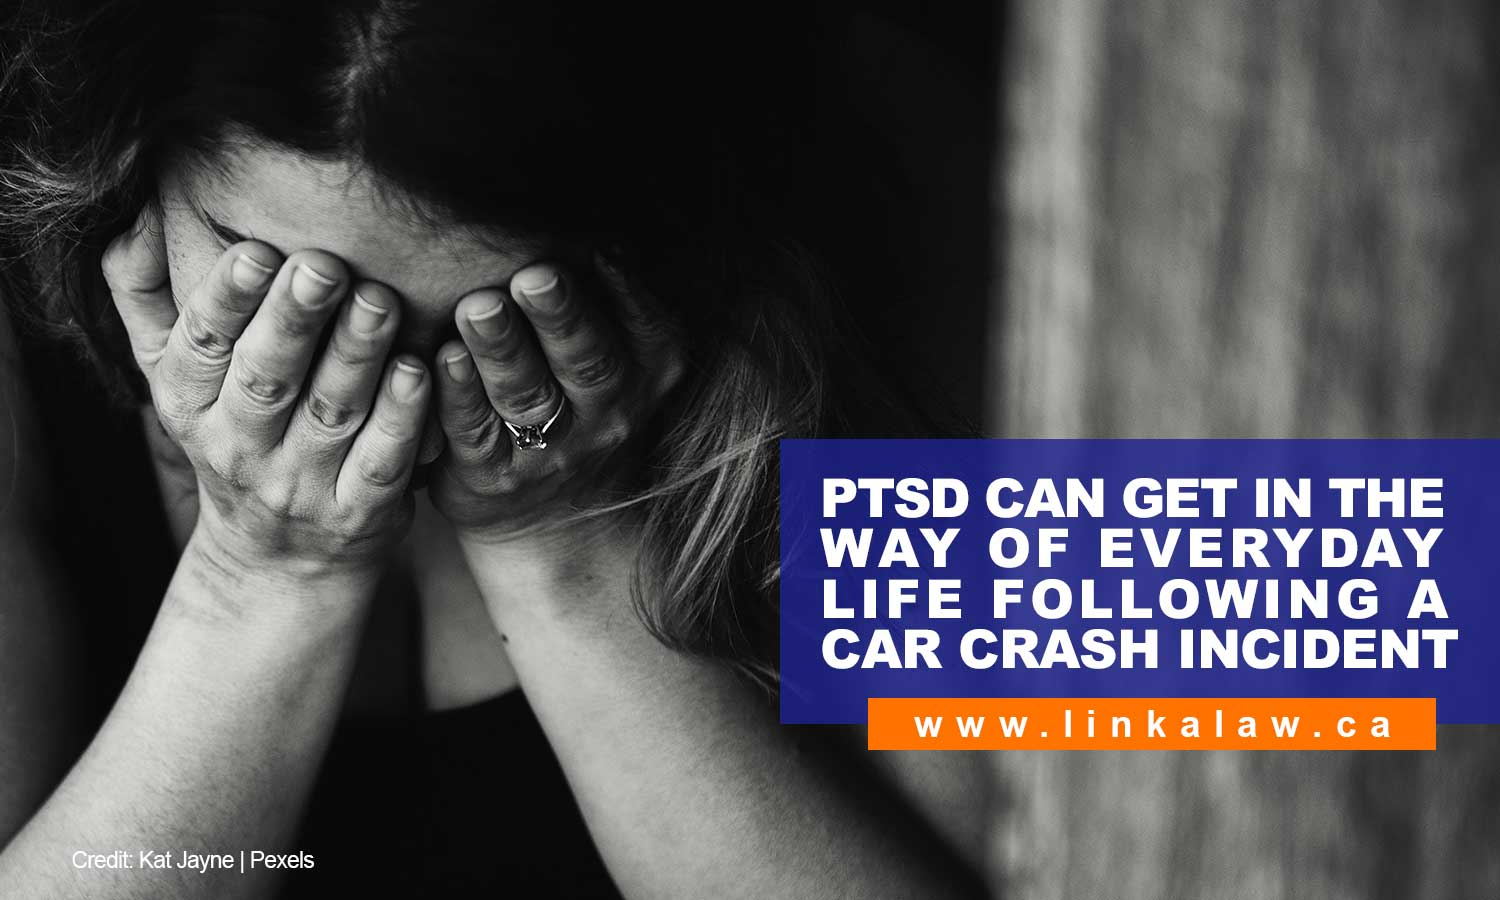 PTSD can get in the way of everyday life following a car crash incident